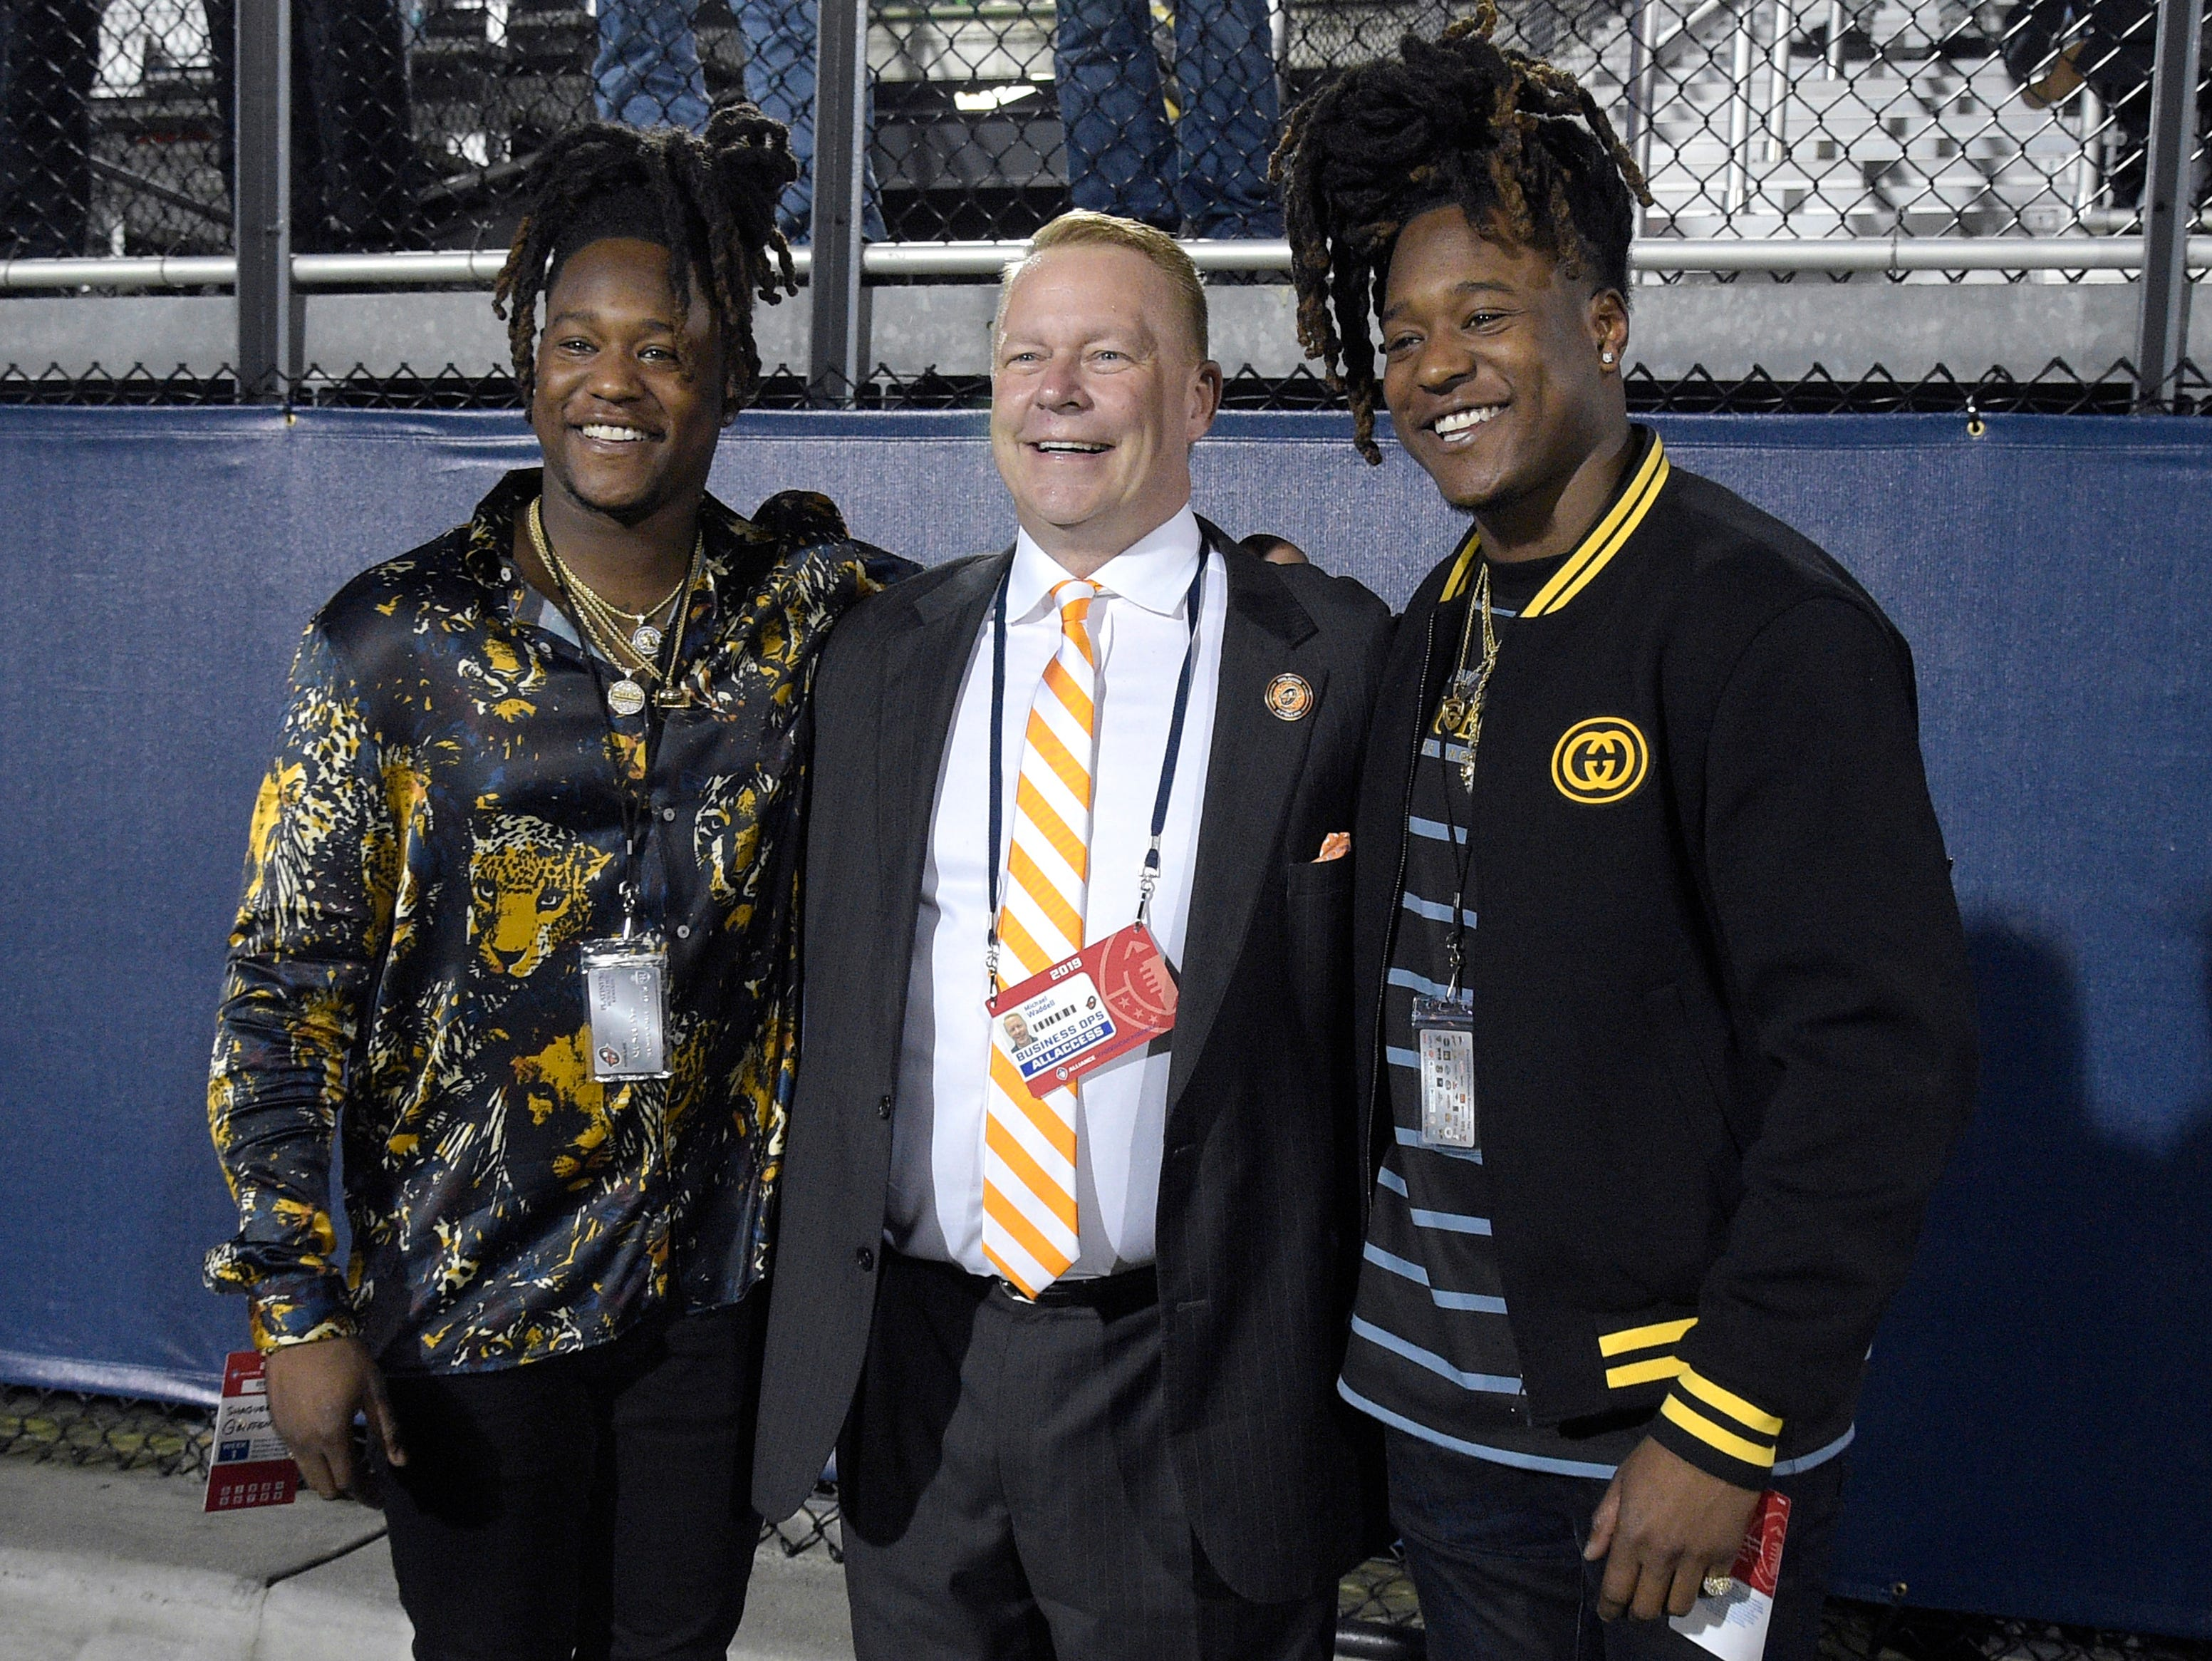 Orlando Apollos president Michael Waddell, center, poses on the sideline with Seattle Seahawks linebacker Shaquem Griffin, left, and defensive back Shaquill Griffin during the first half of the team's Alliance of American Football game against the Atlanta Legends on Saturday, Feb. 9, 2019, in Orlando, Fla. (AP Photo/Phelan M. Ebenhack)